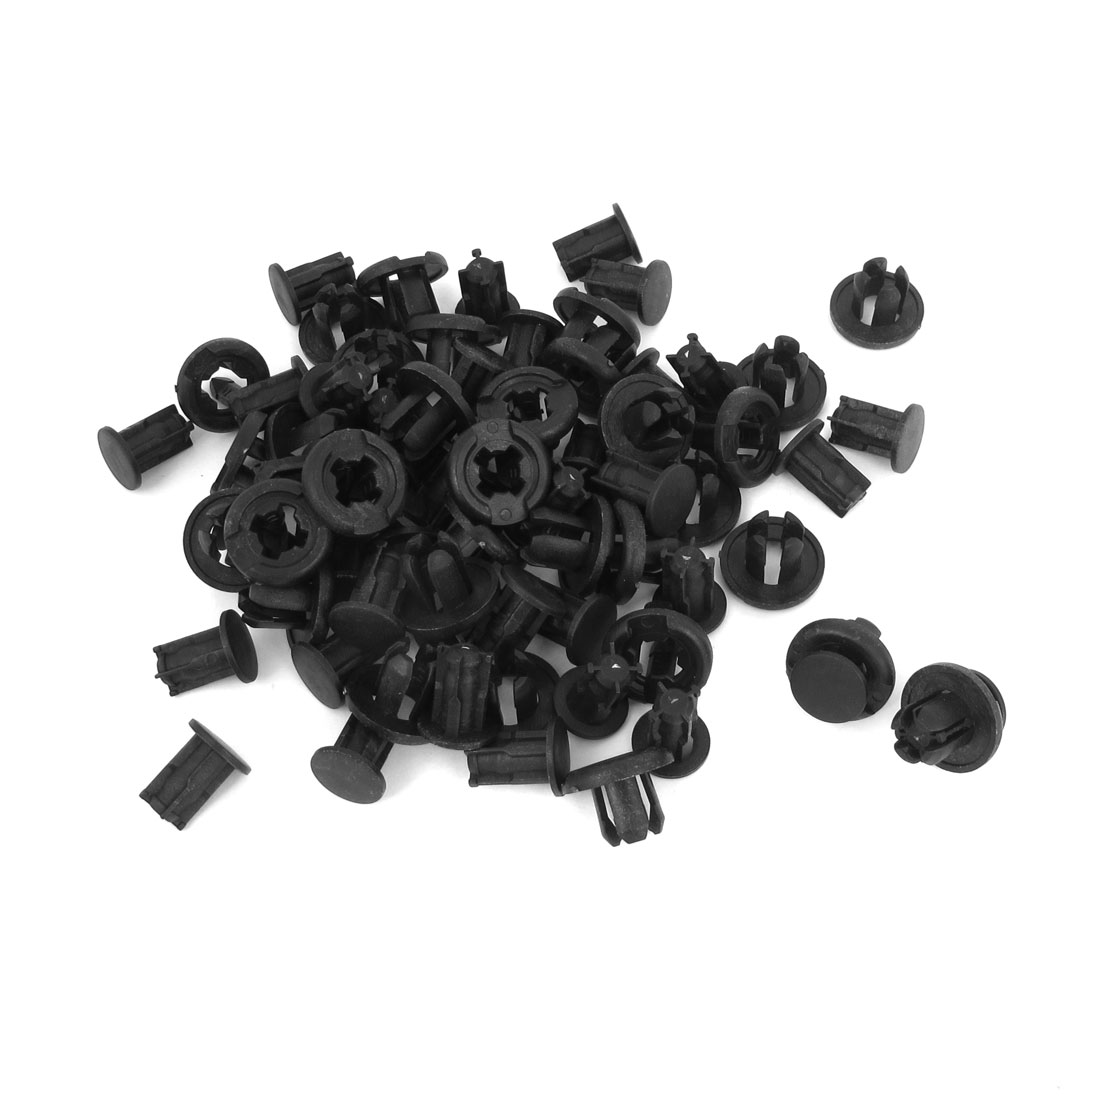 50 Pieces 8mm Hole Black Plastic Screw Rivet Car Door Trim Panel Retainer Clip